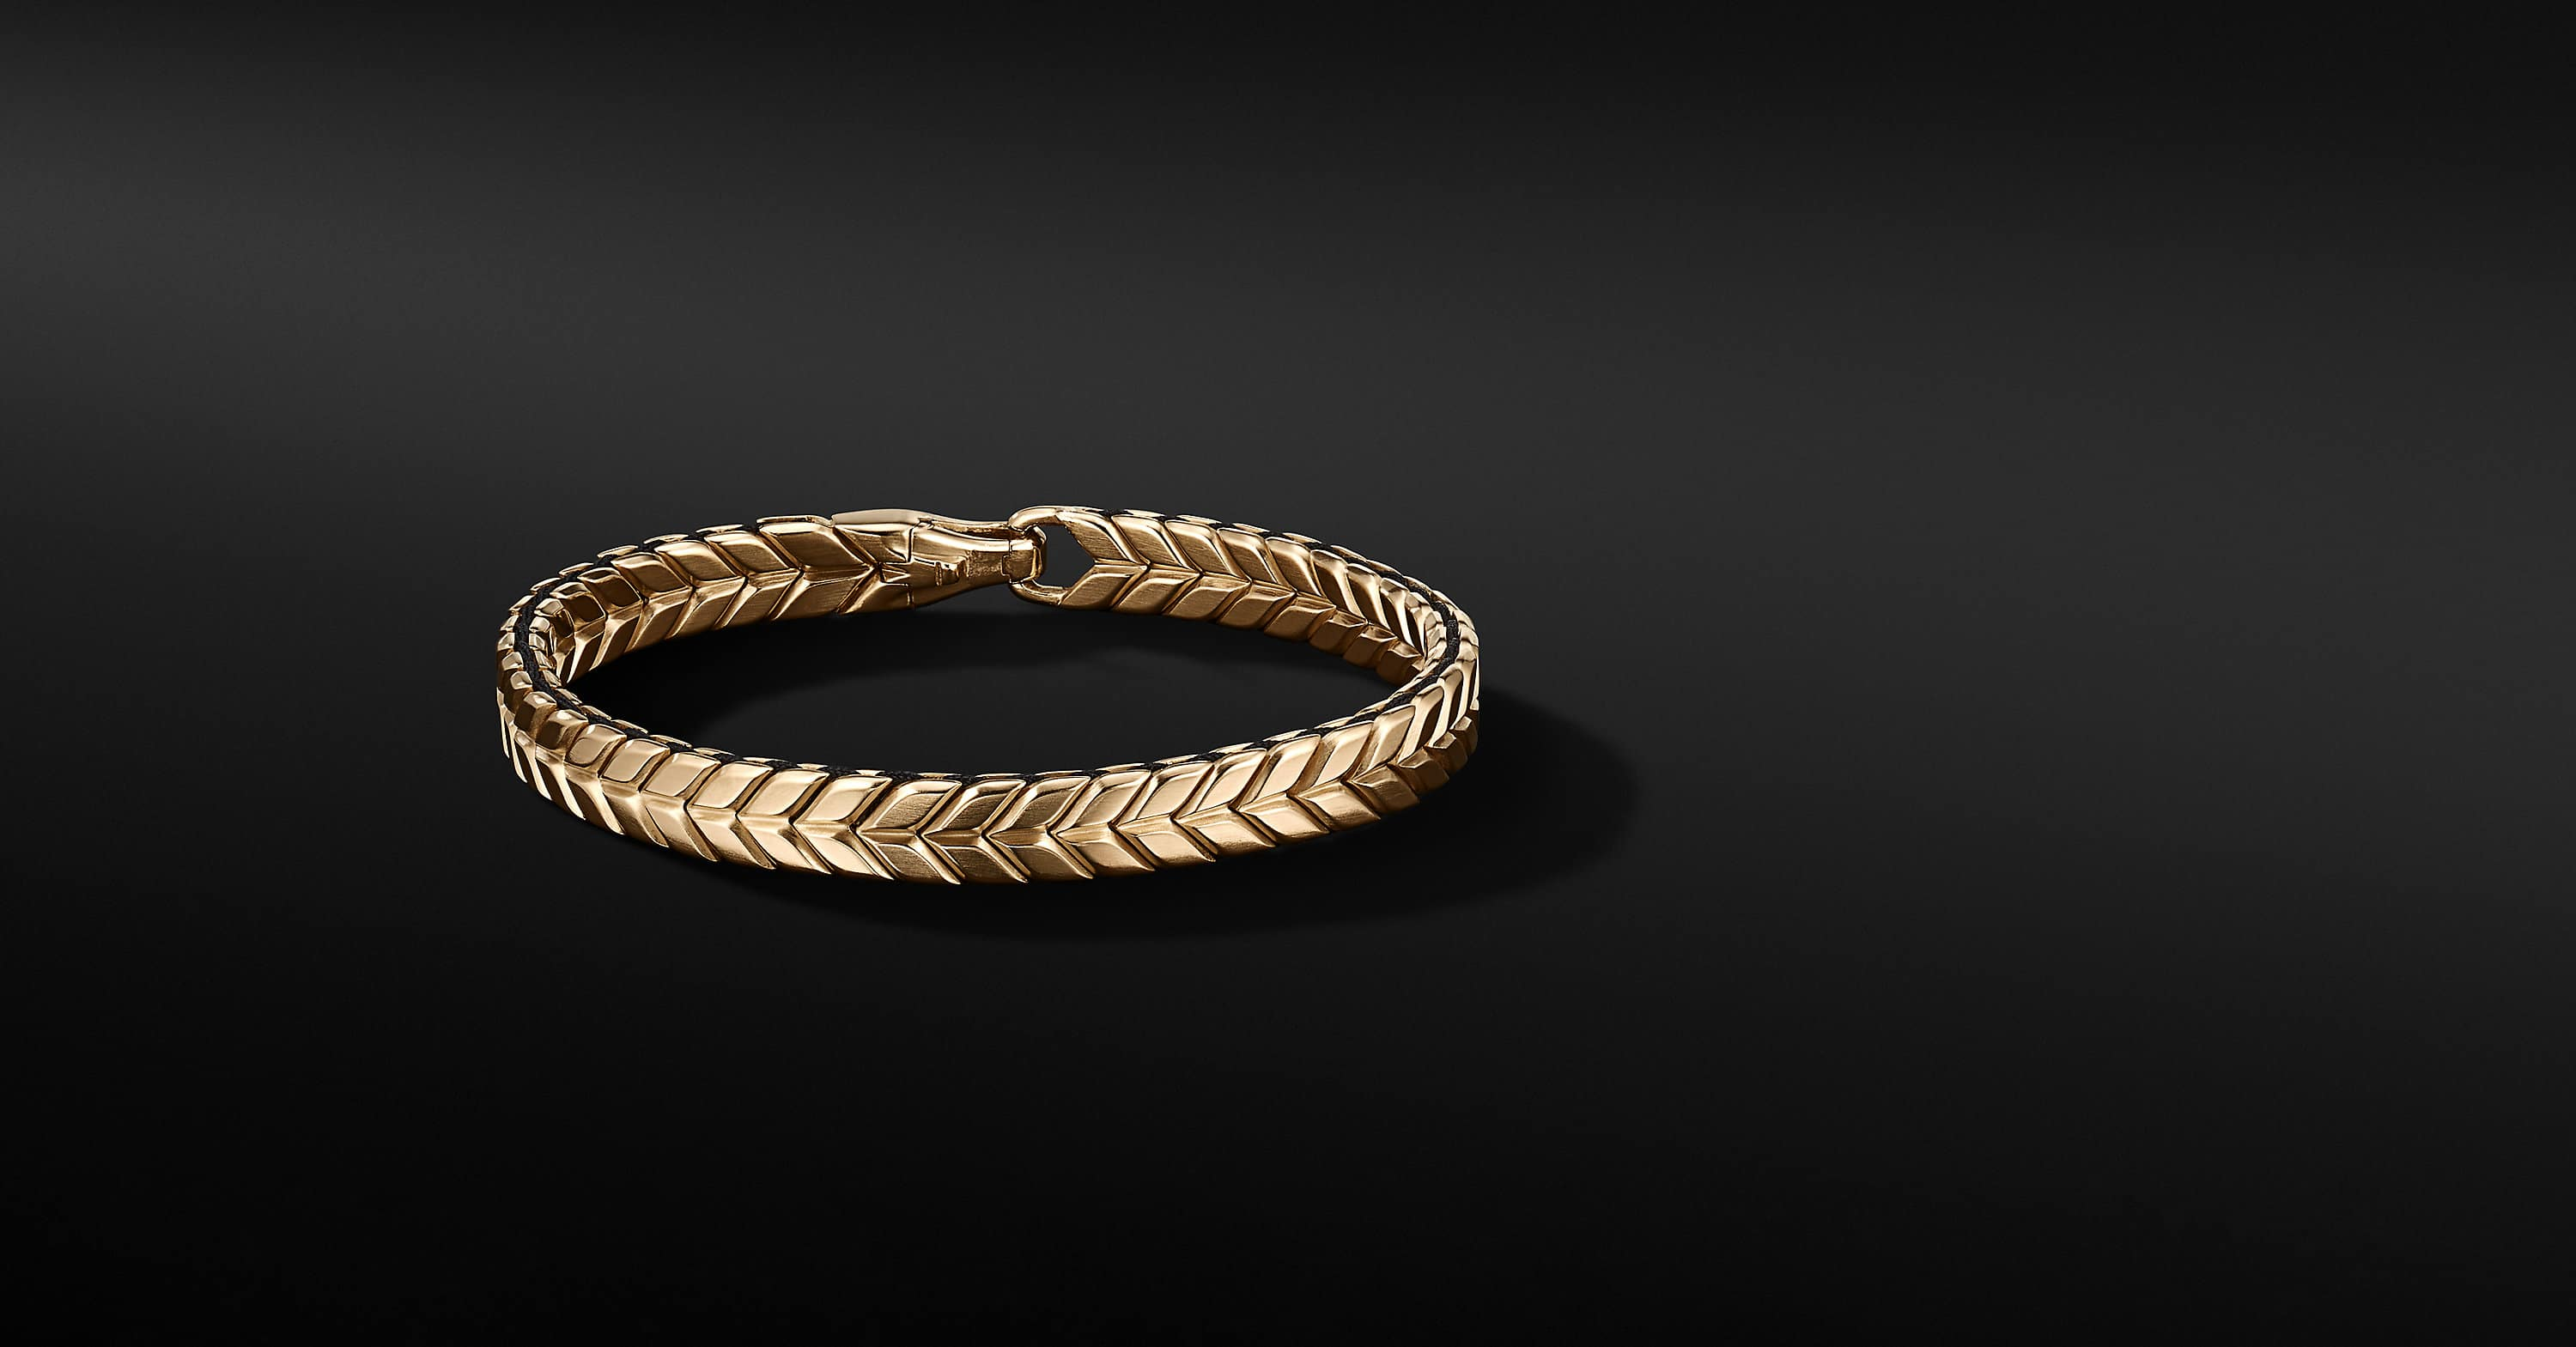 Chevron Woven Bracelet in 18K Yellow Gold